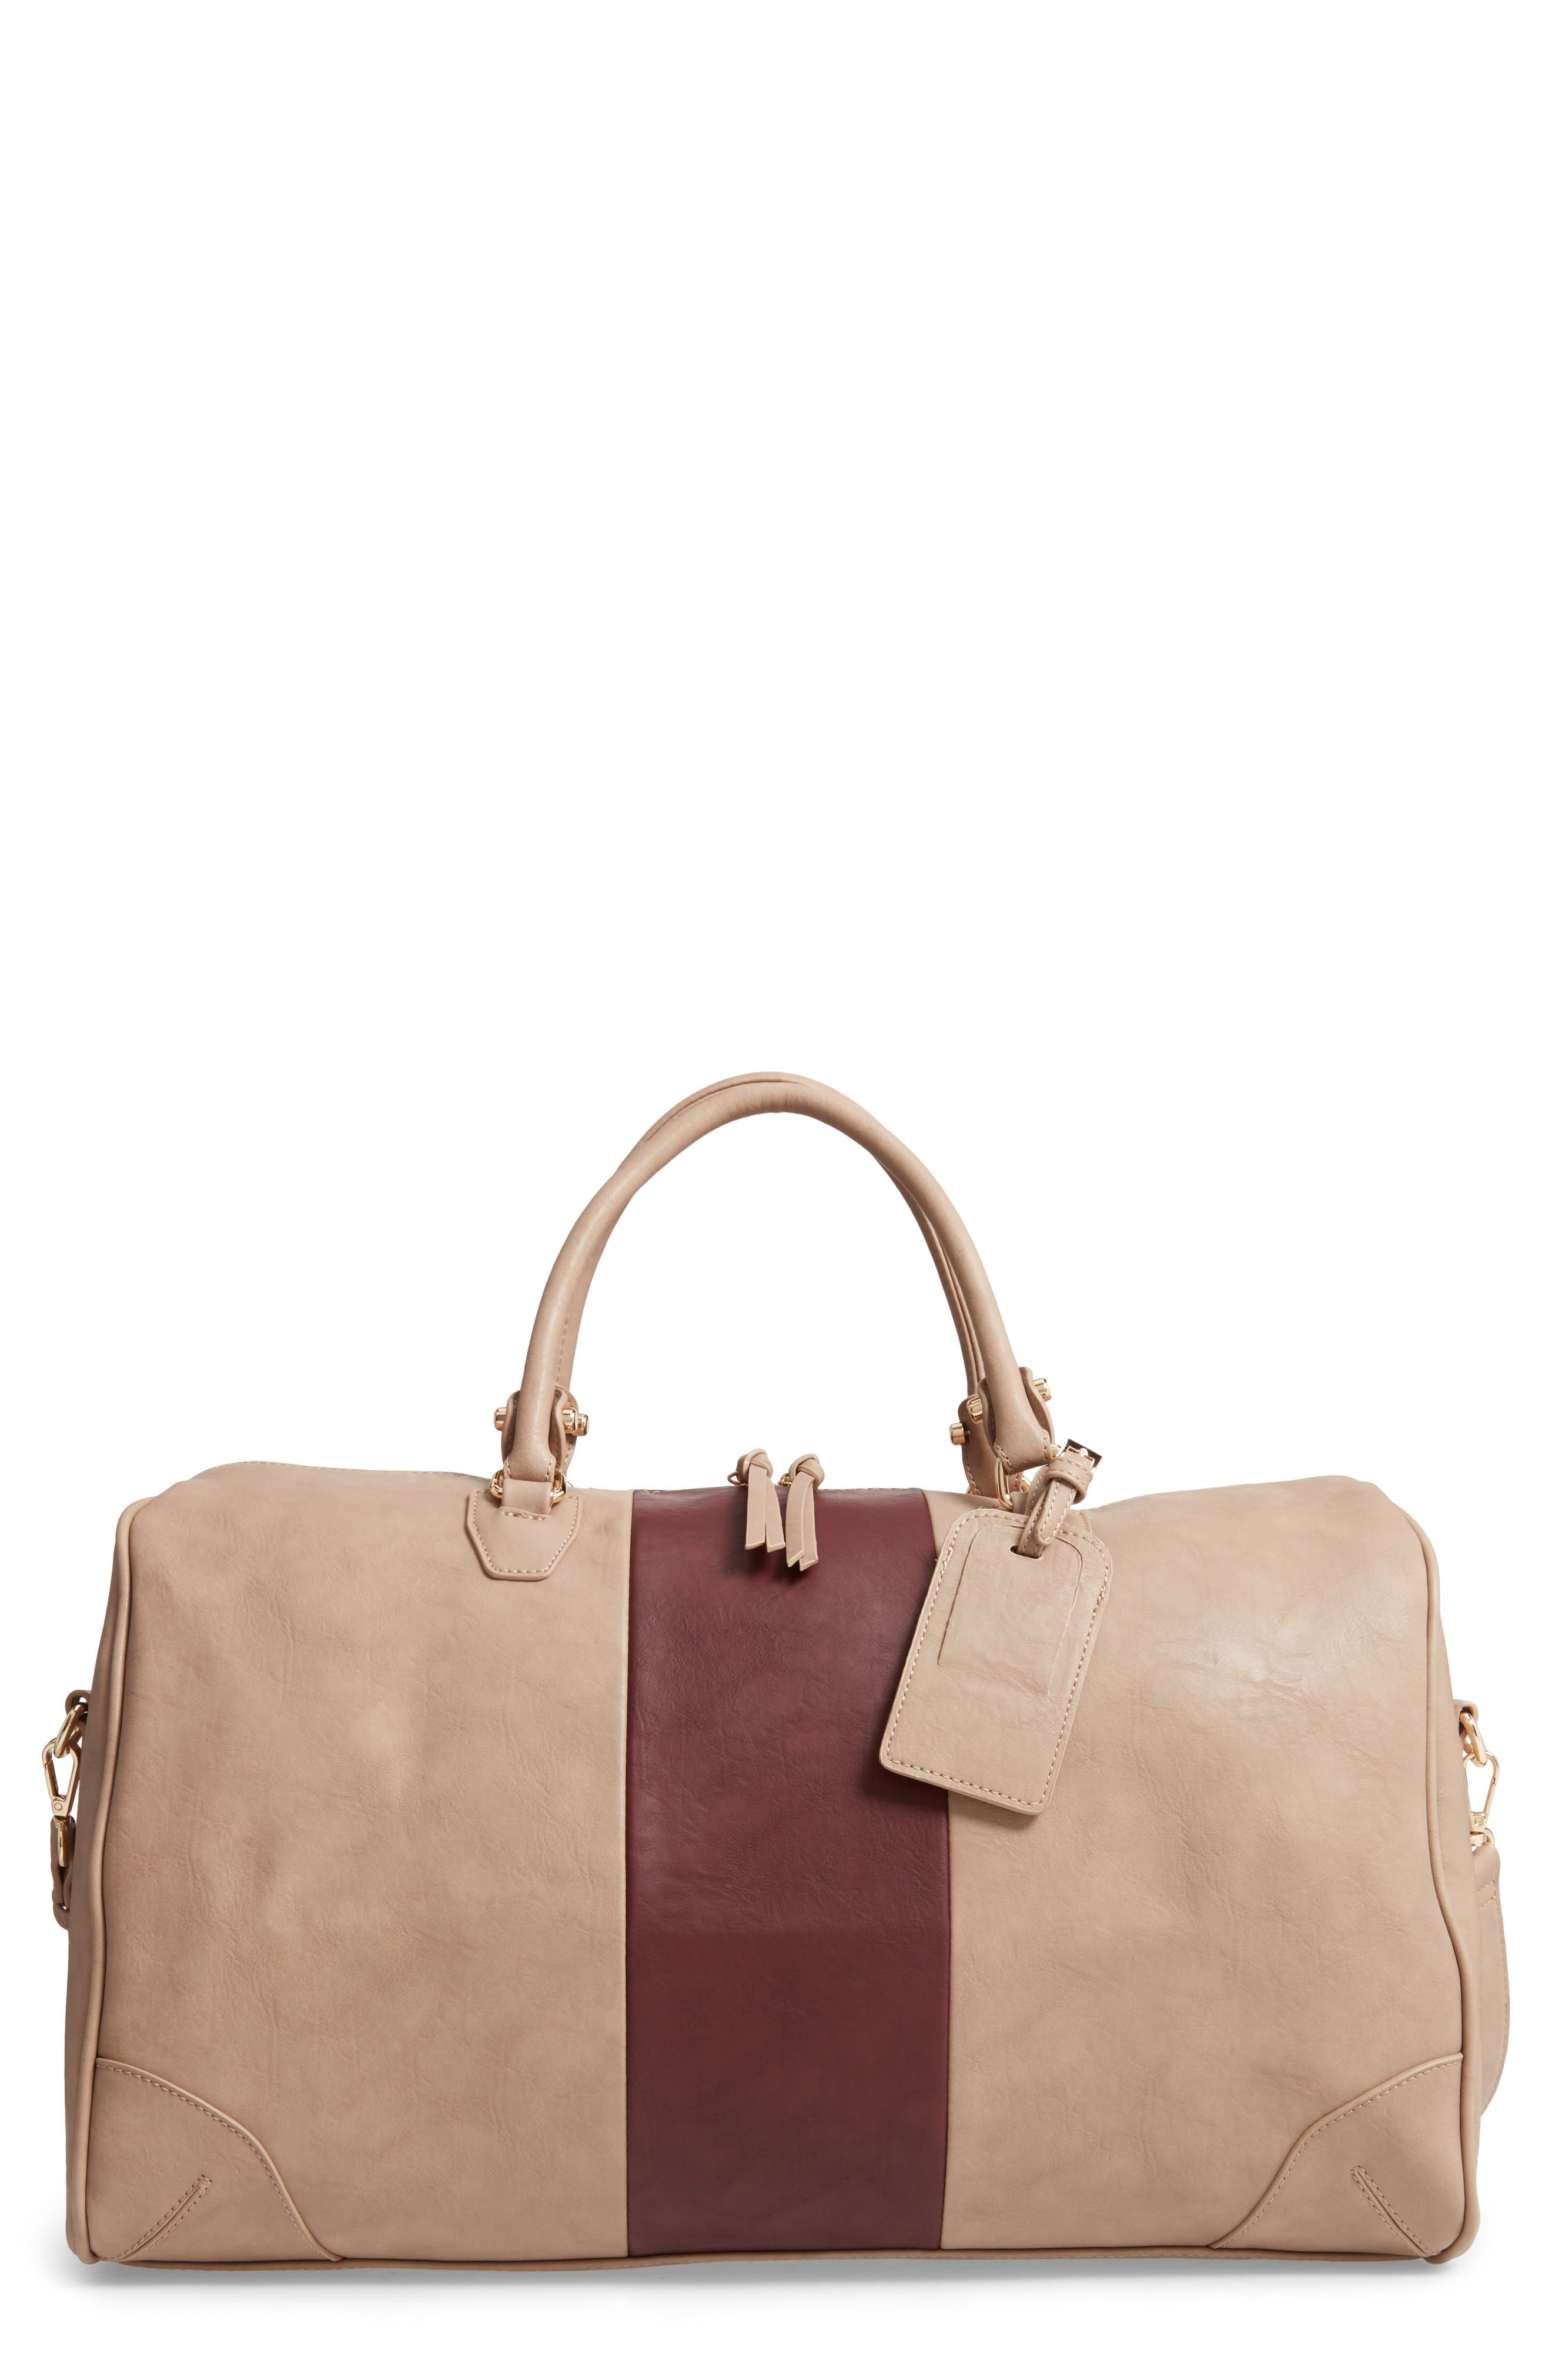 'Robin' Faux Leather Weekend Bag,                         Main,                         color, TAUPE